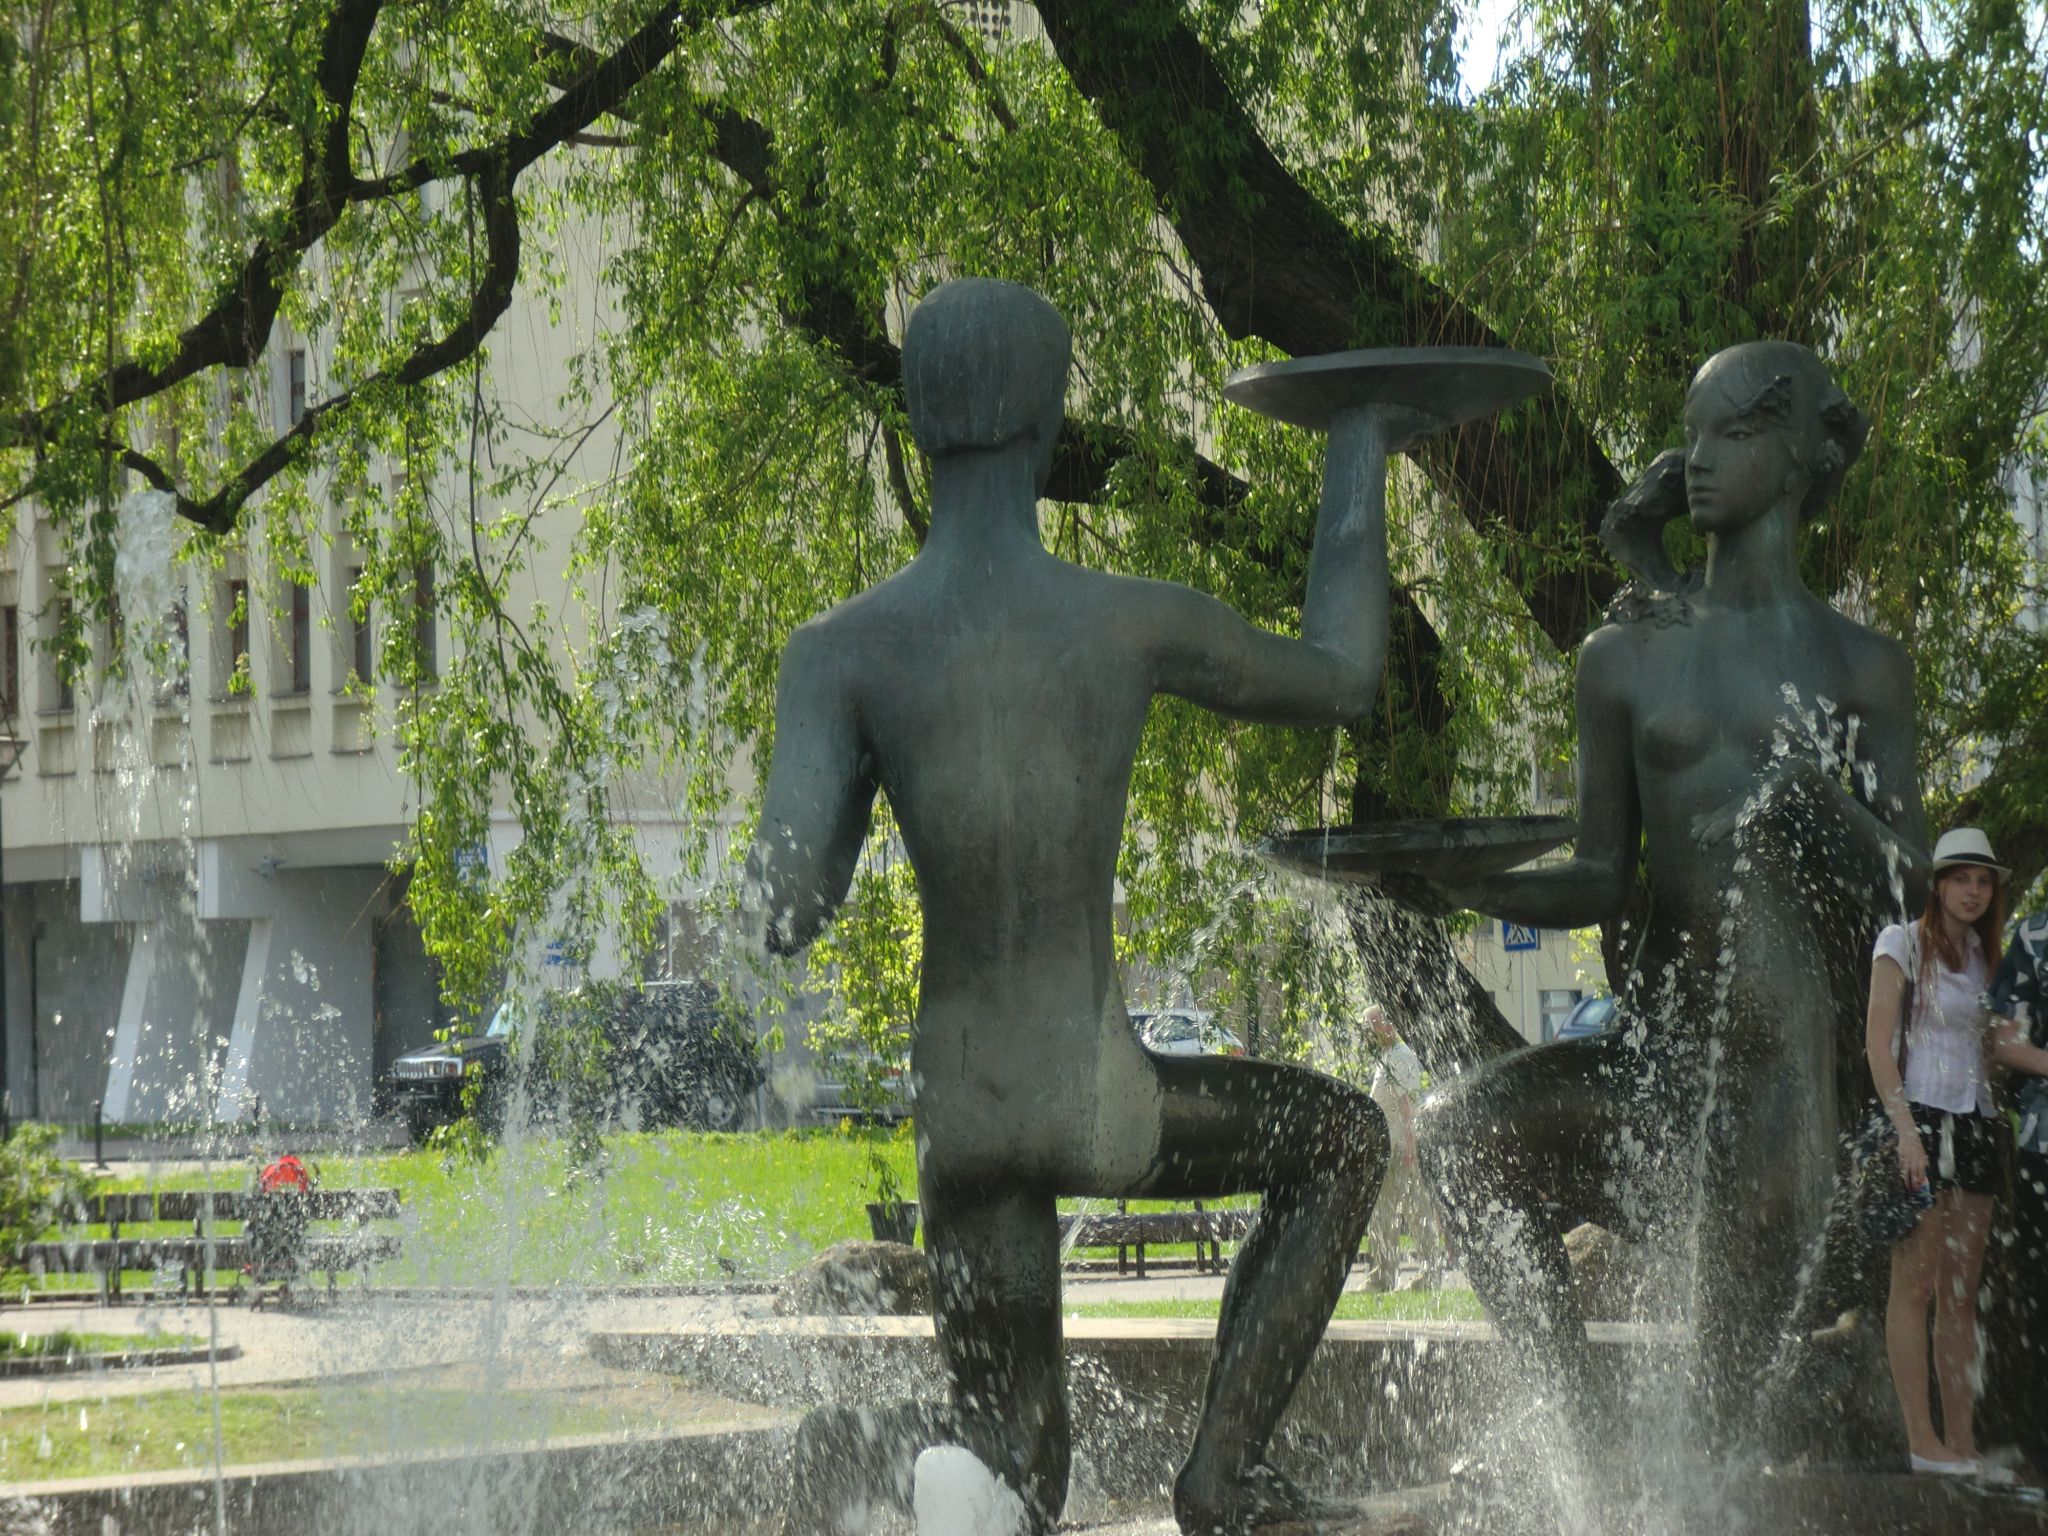 Minsk park - Minsk, 1 amazing city you have to see